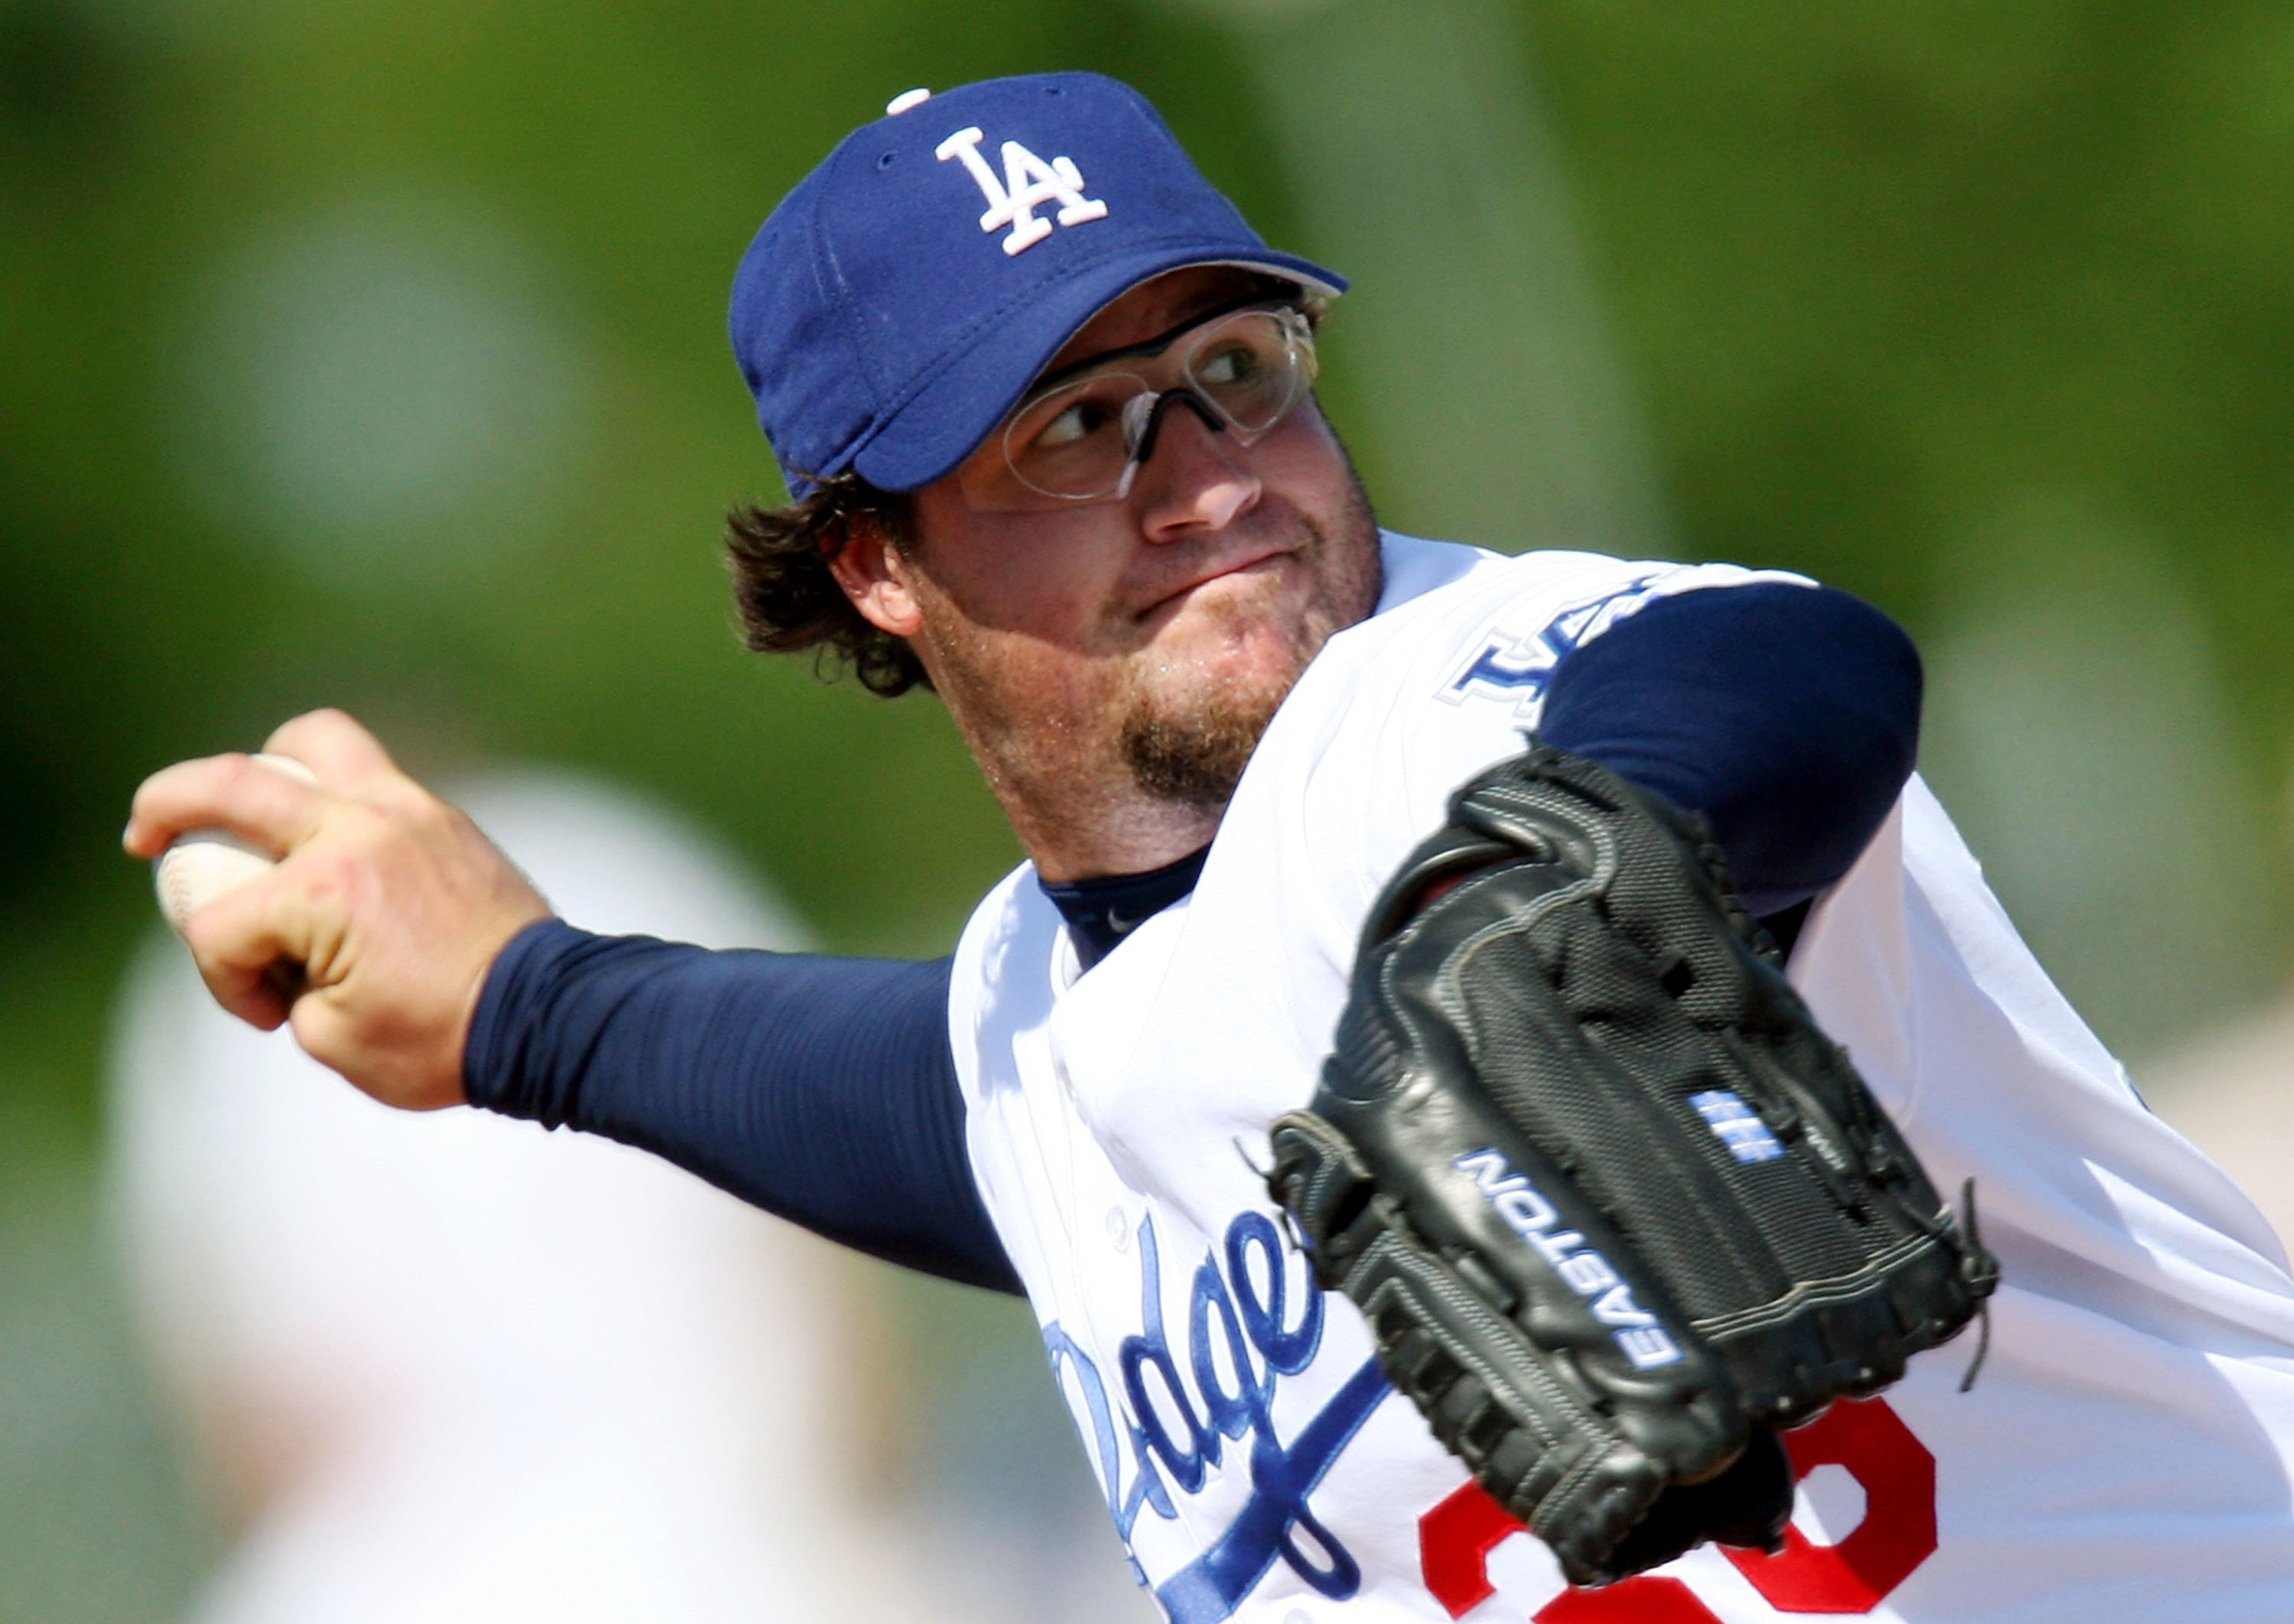 VERO BEACH, FL - MARCH 12:  Closer Eric Gagne #38 of the Los Angeles Dodgers pitches against the Houston Astros during a spring training game at Holman Stadium March 12, 2006 in Vero Beach, Florida. Gagne is coming back from an injury and pitched just one